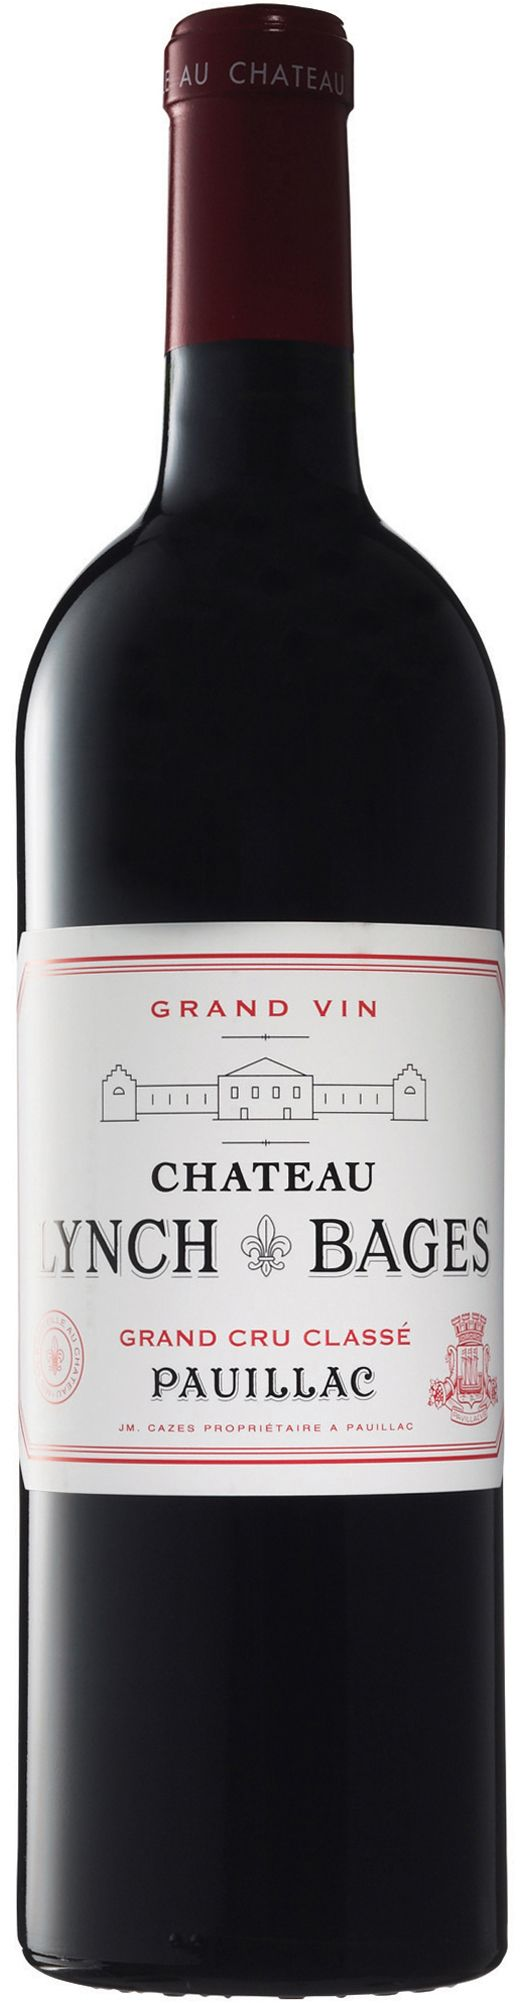 Chateau Lynch-Bages, 2004